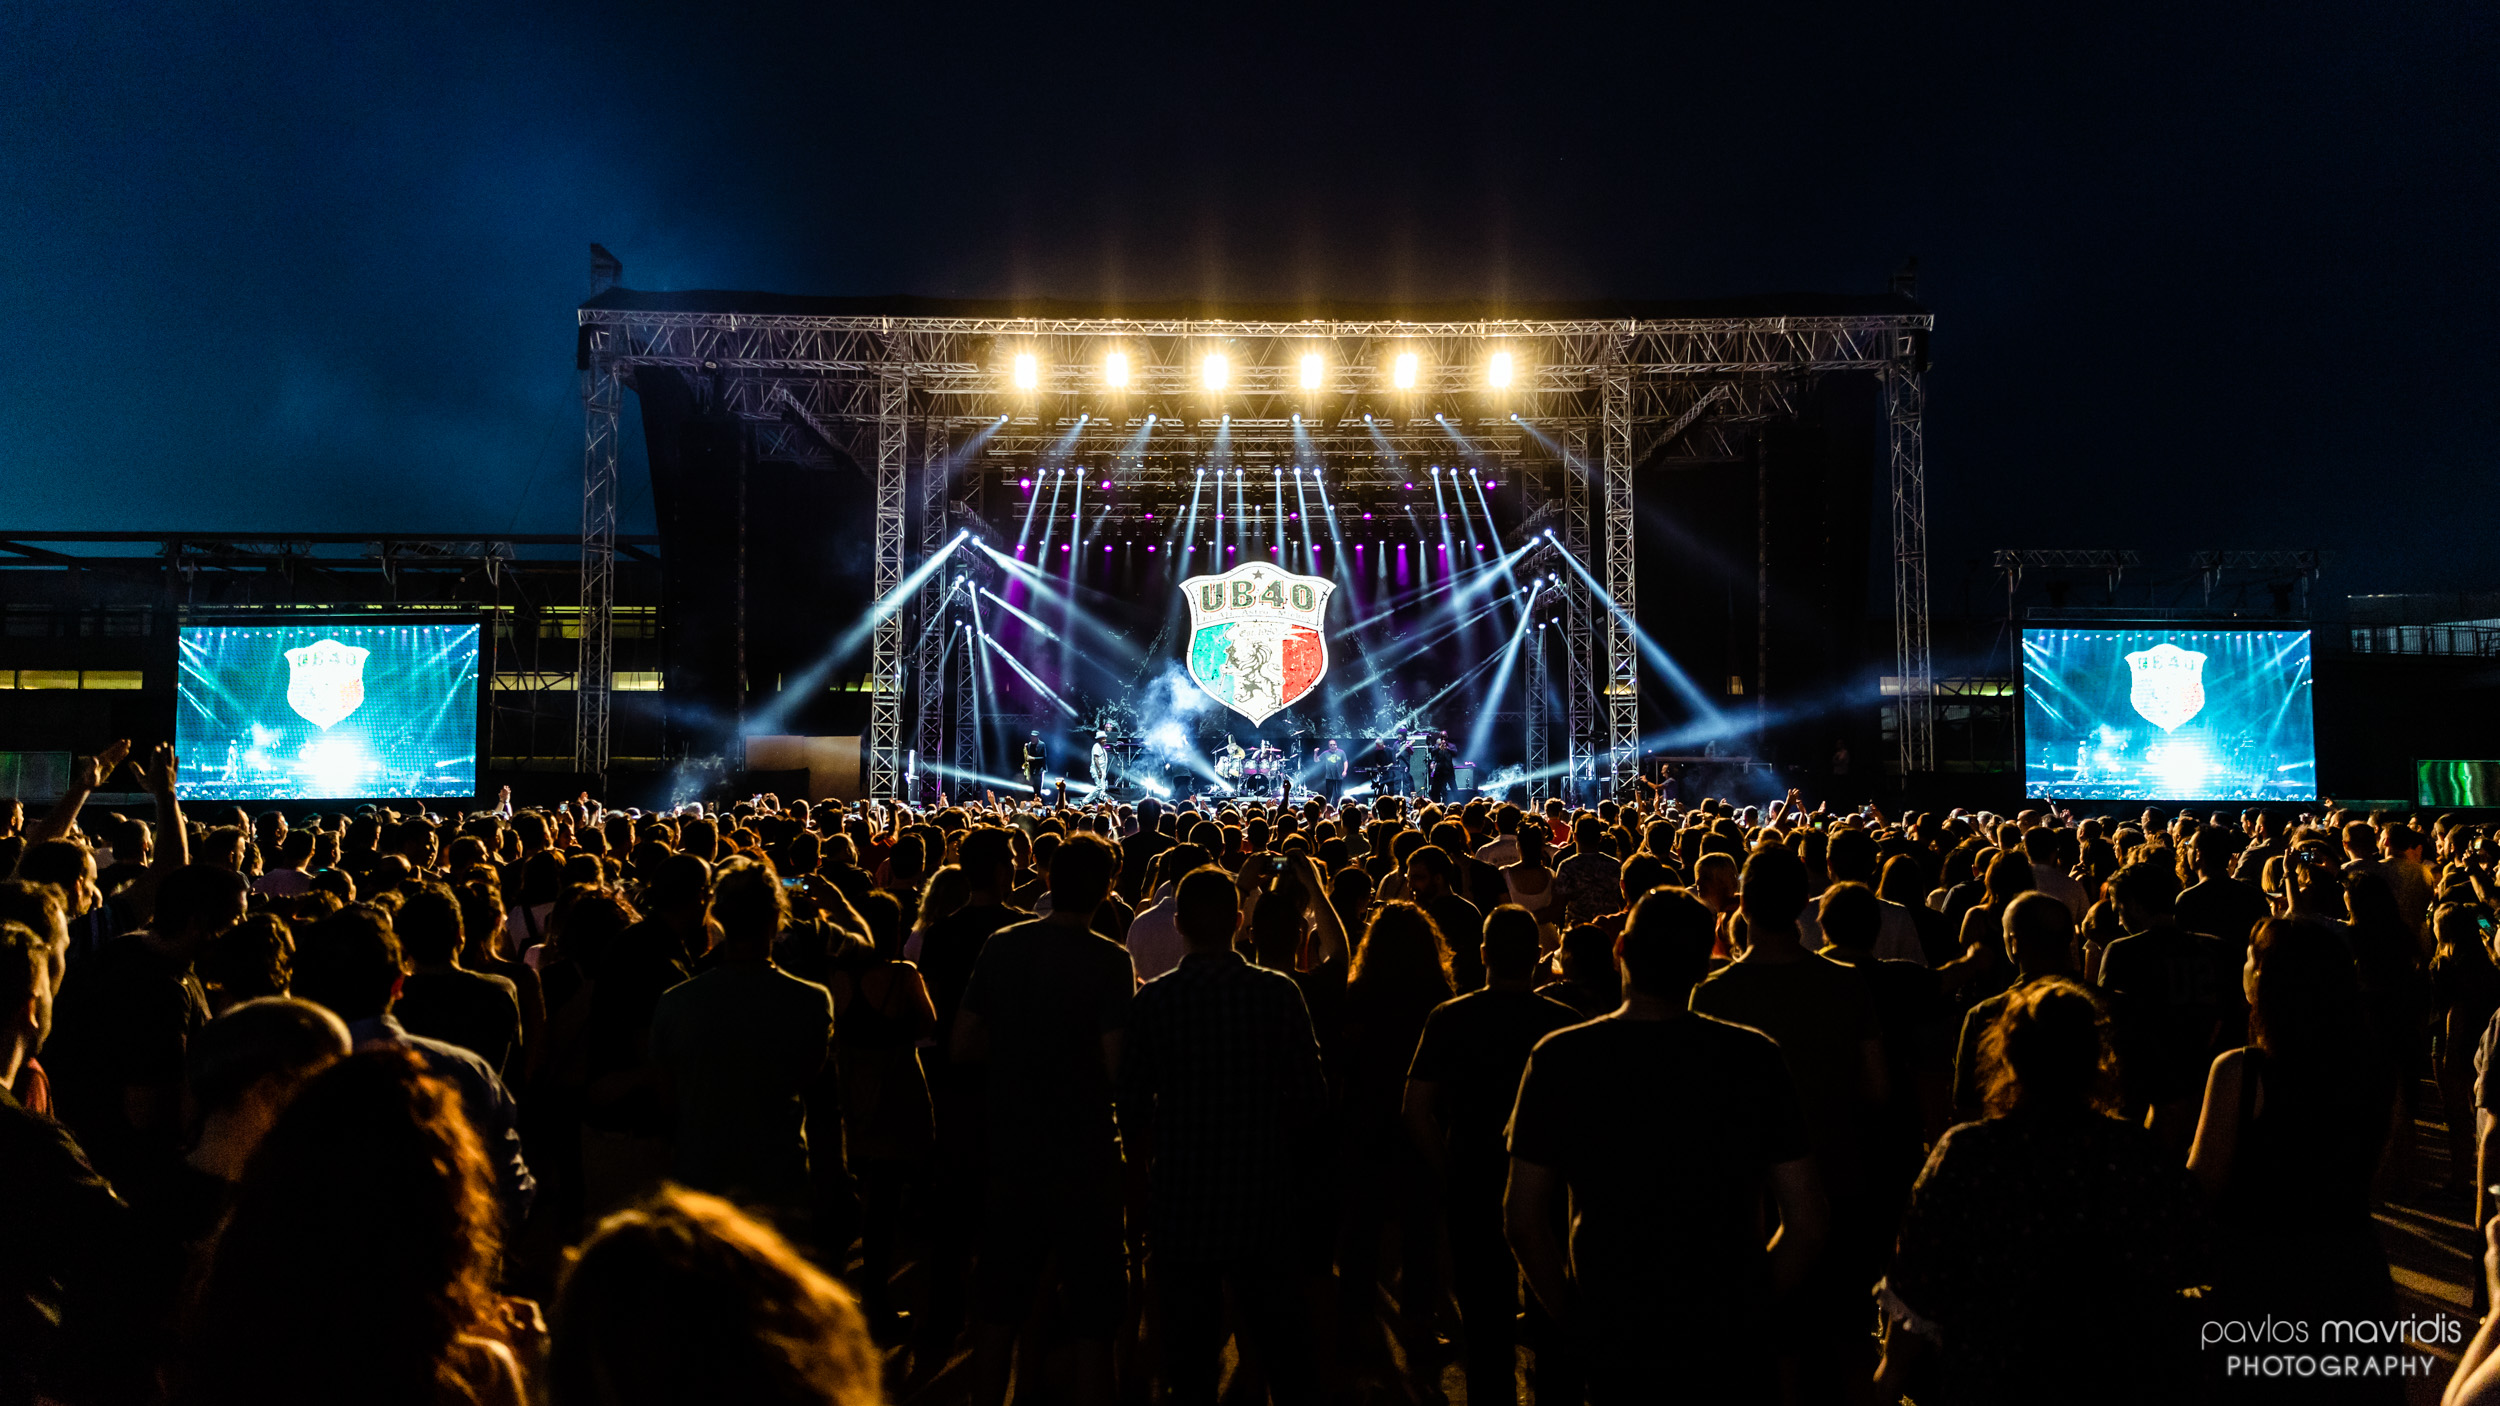 UB40 feat. Ali, Astro, Mickey_Release Athens Festival 2018_01_hires_web.jpg